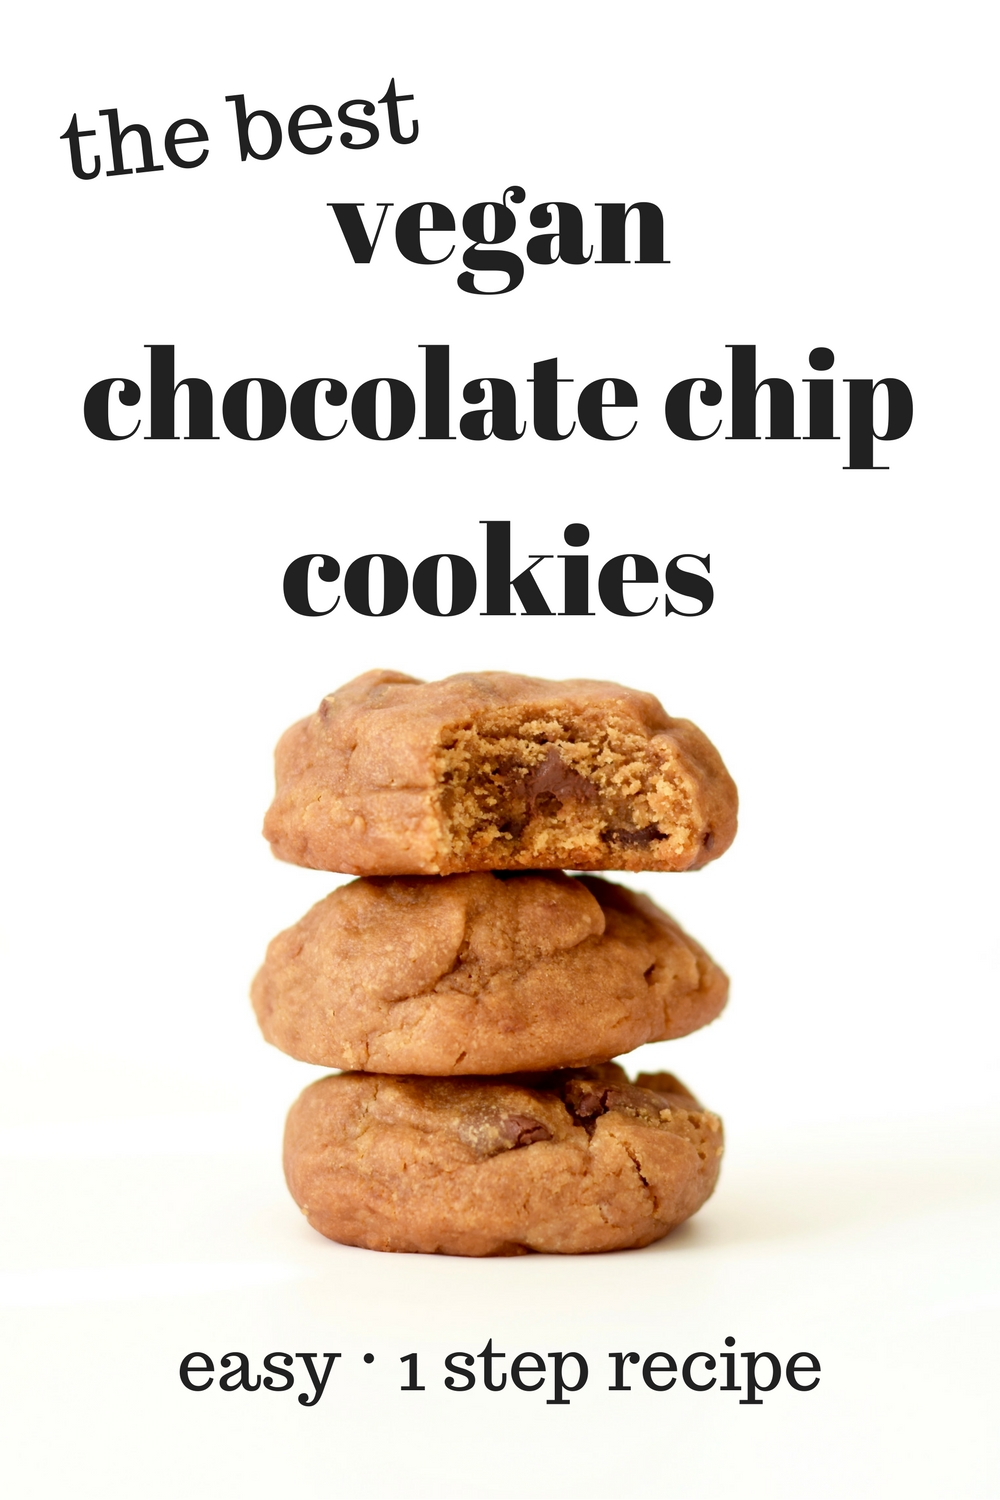 The Best Vegan Chocolate Chip Cookies Recipe